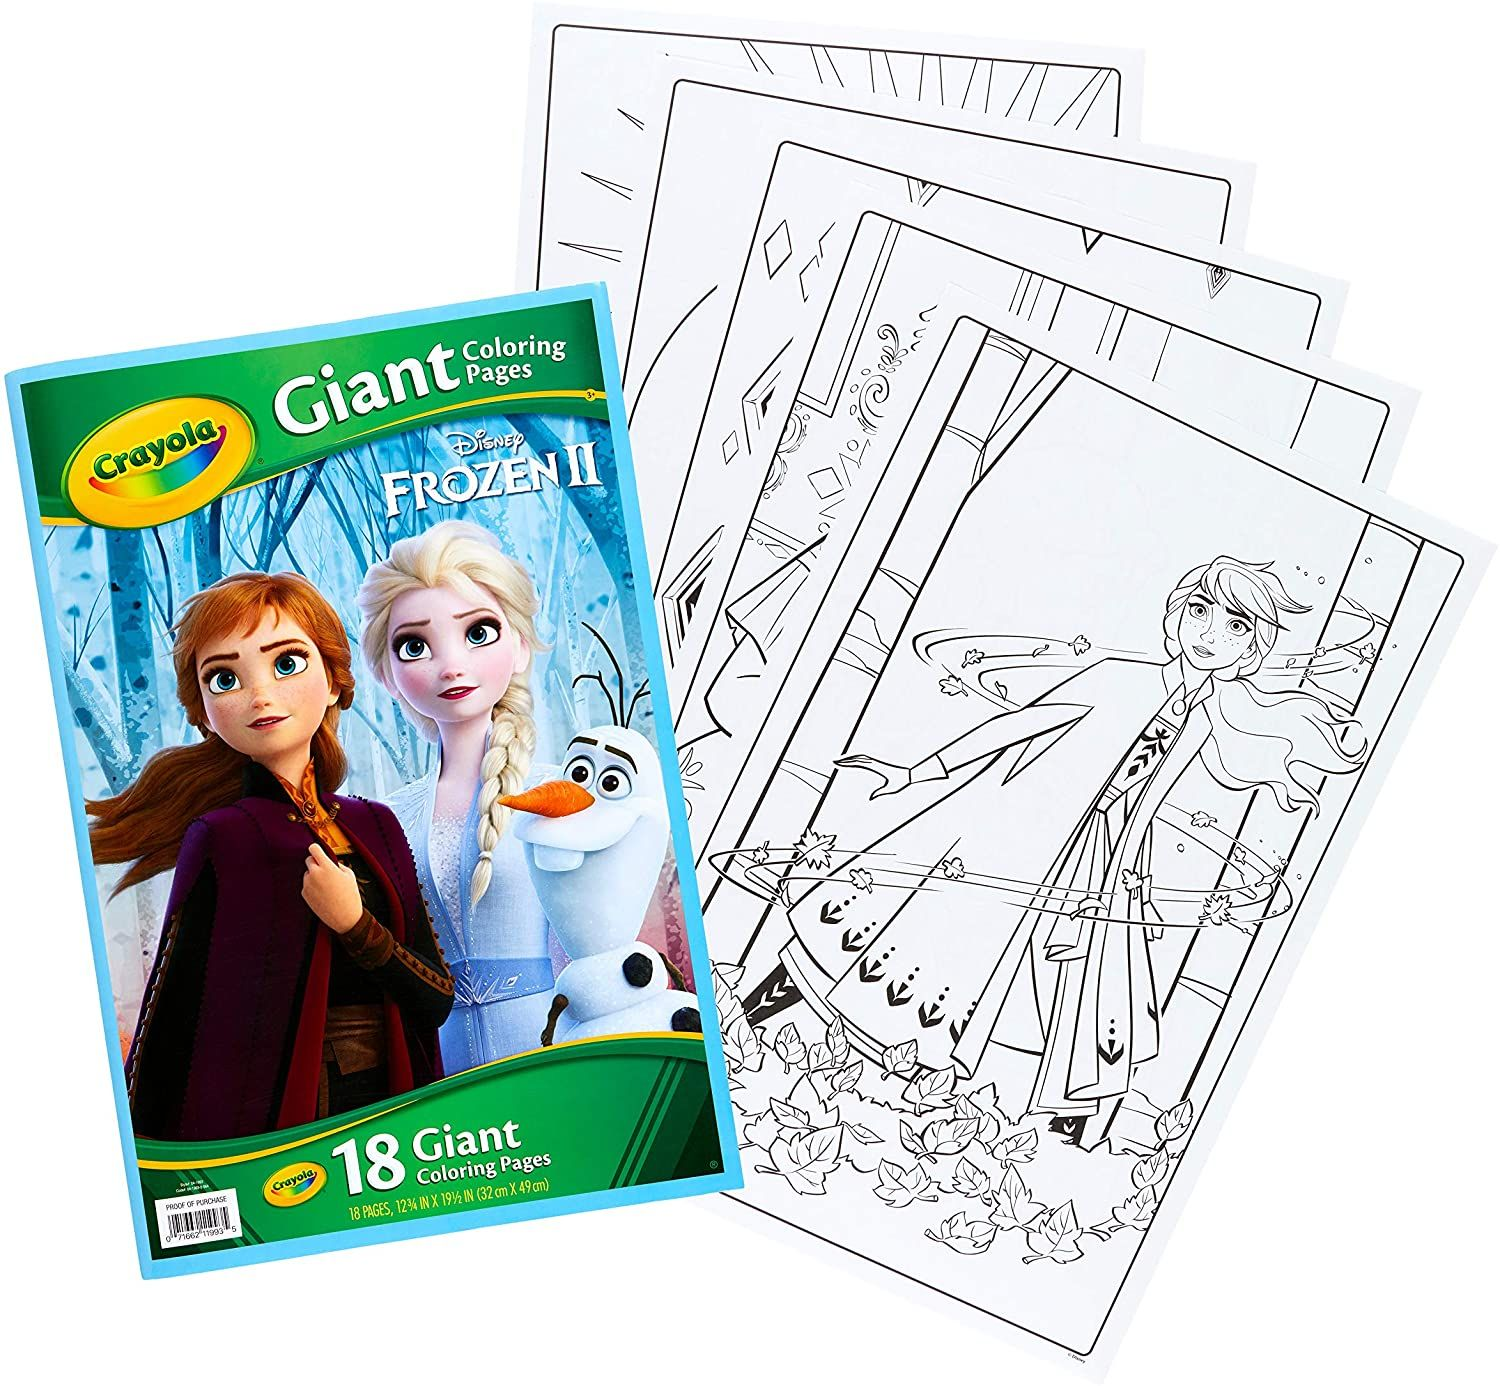 Crayola Frozen Giant Coloring Pages Kids Art Supplies Popular Disney Movies Coloring Pages